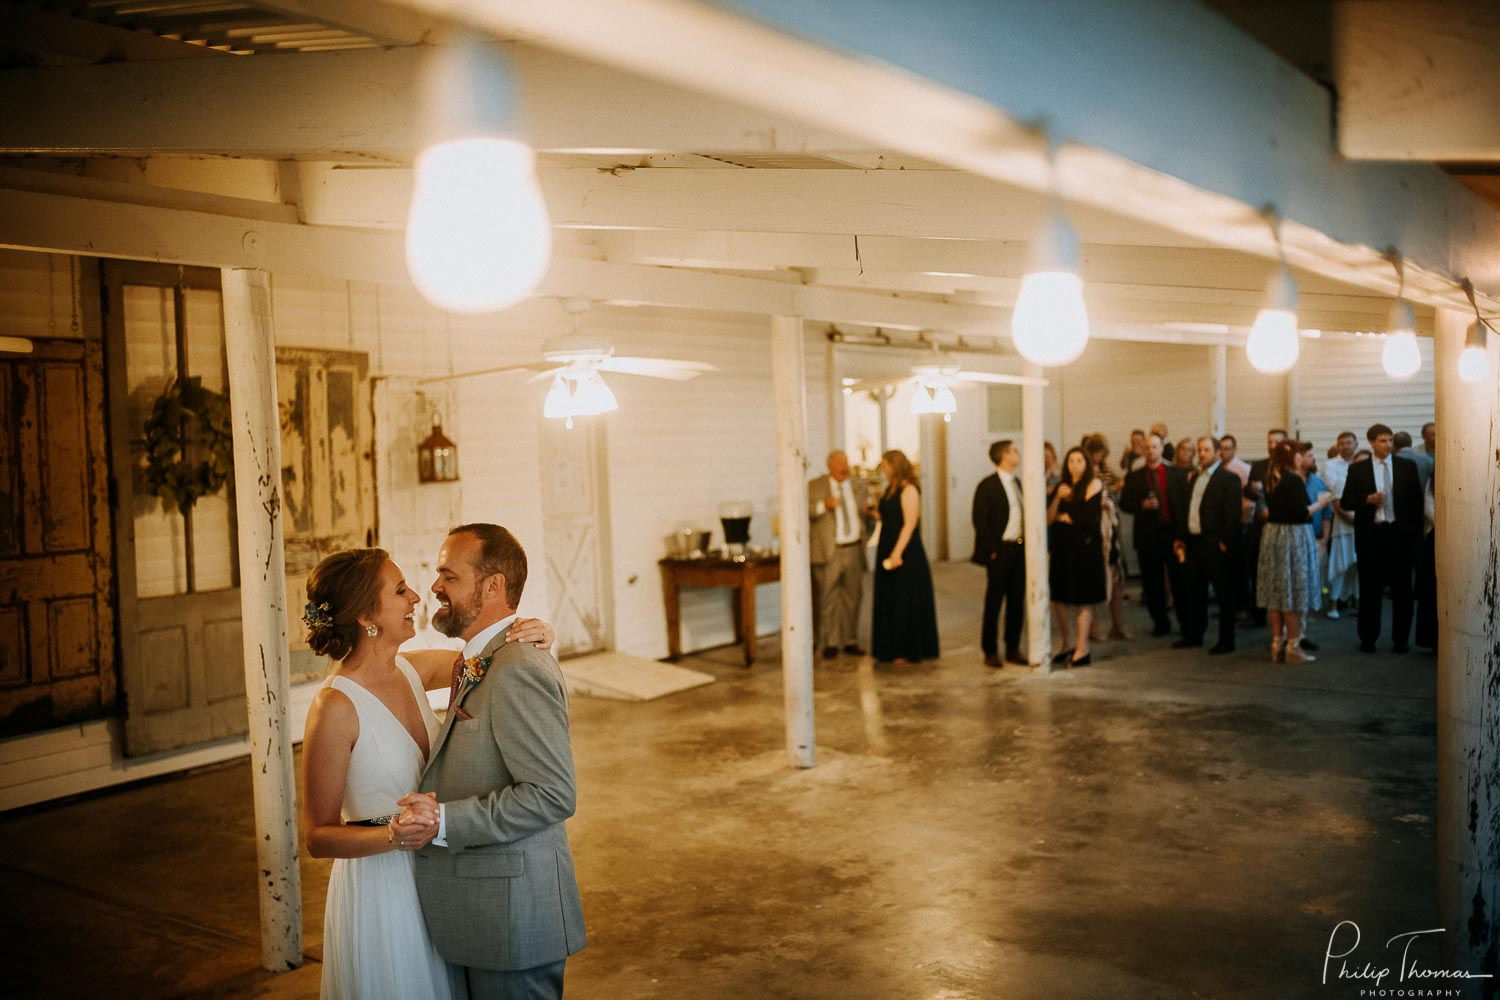 FIrst dances at The Grand Texana Wedding Barr Minta + Phillip -